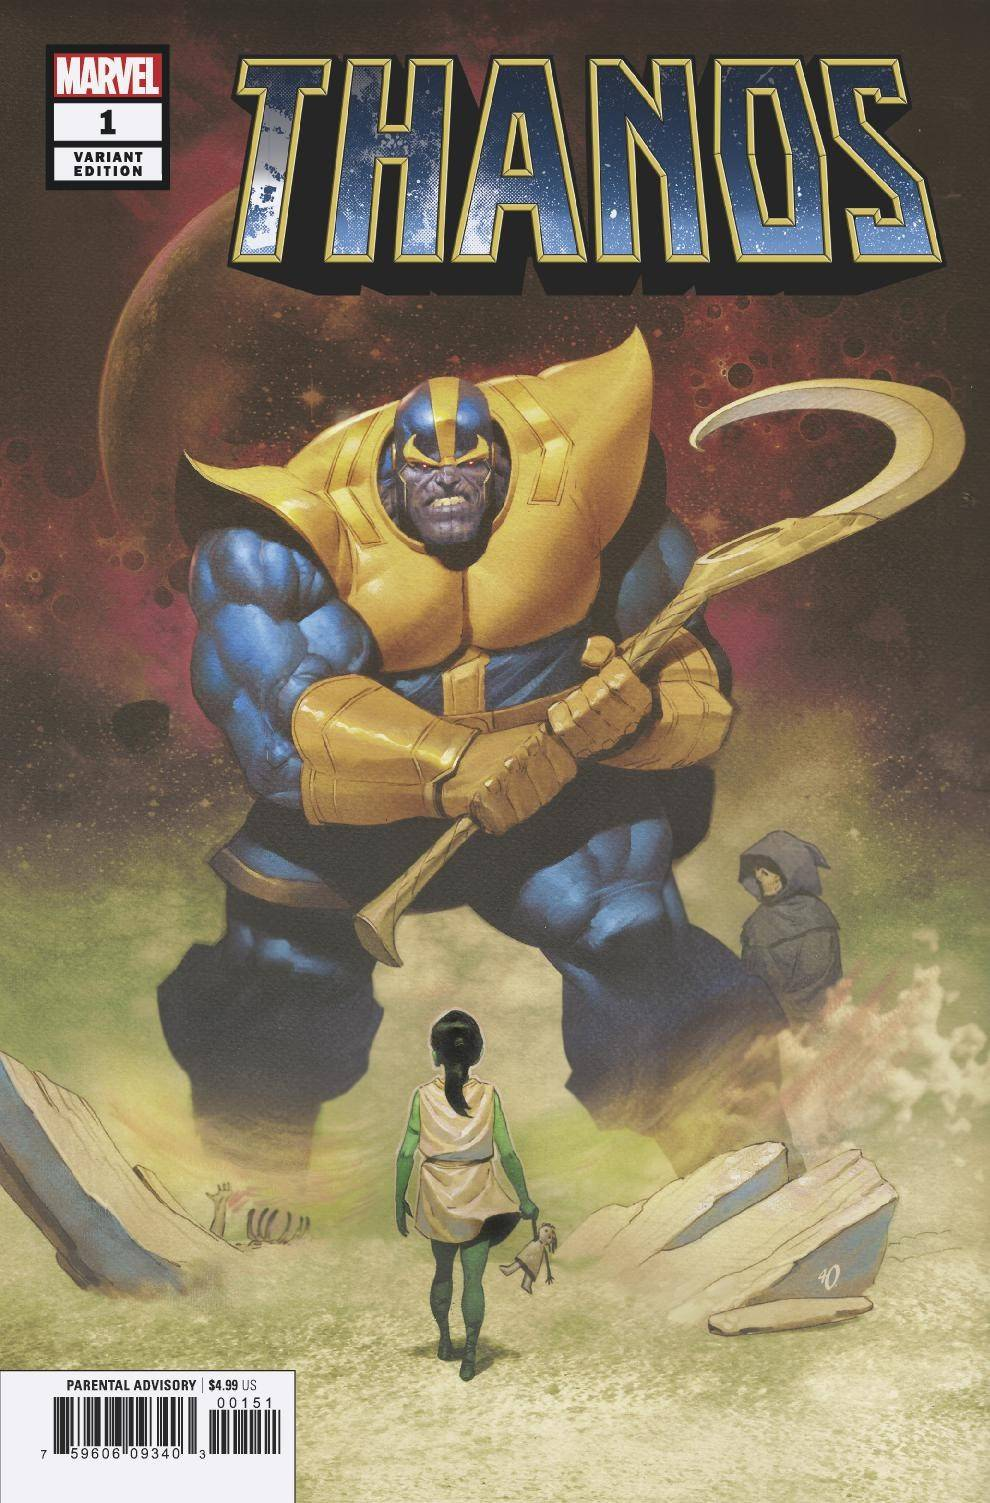 THANOS #1 (OF 6) OLIVETTI VARIANT